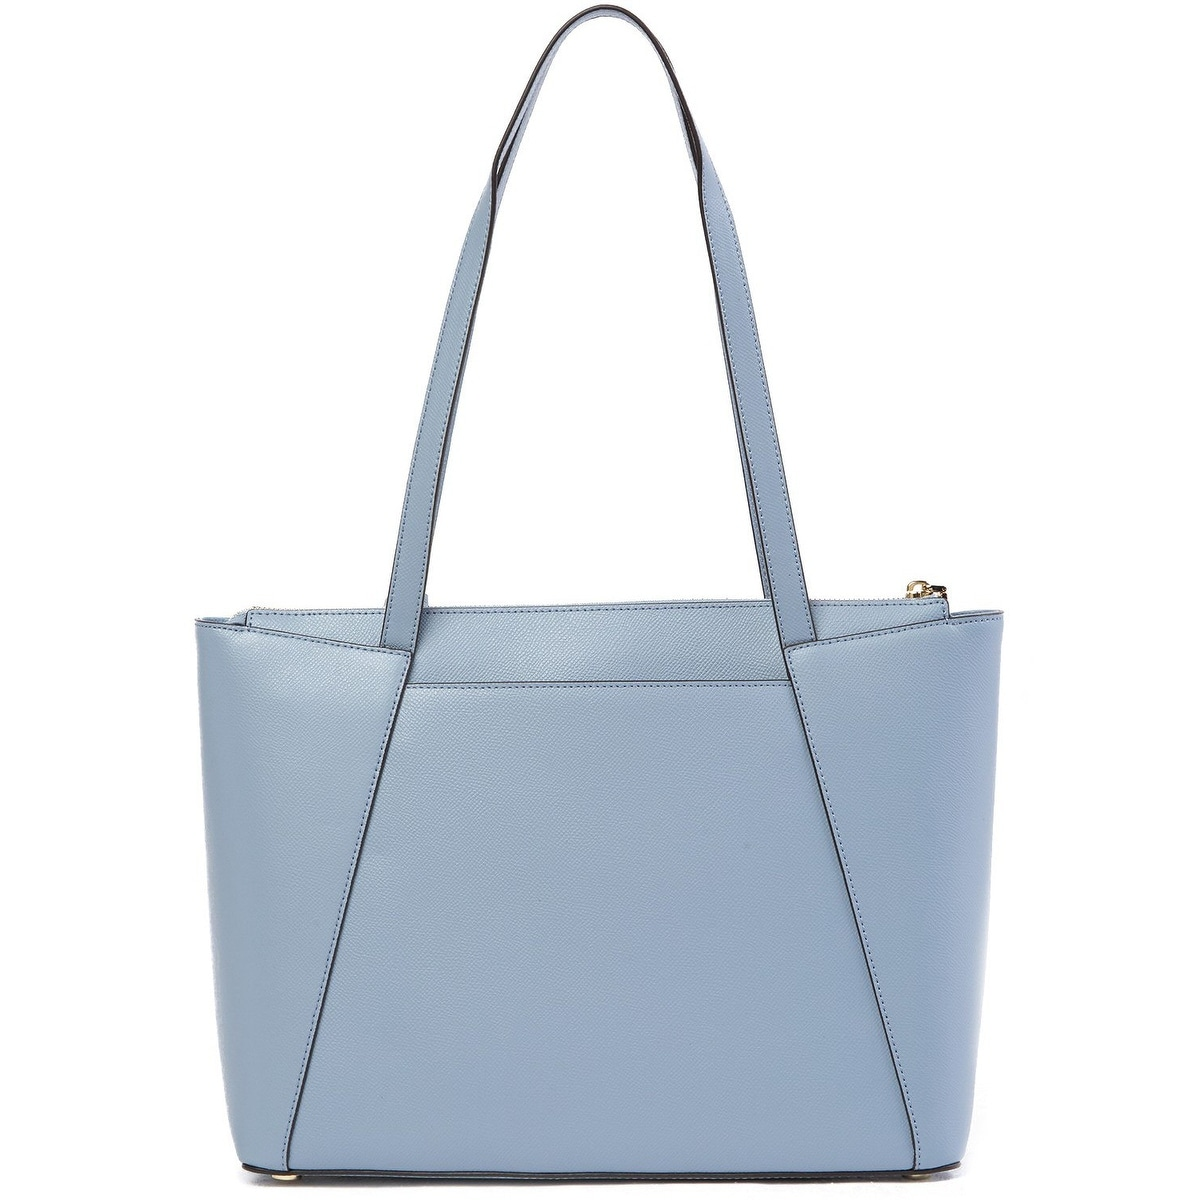 cb5d3bad9eb5 MICHAEL Michael Kors Maddie Medium East West Top Zip Leather Tote Bag Pale  Blue